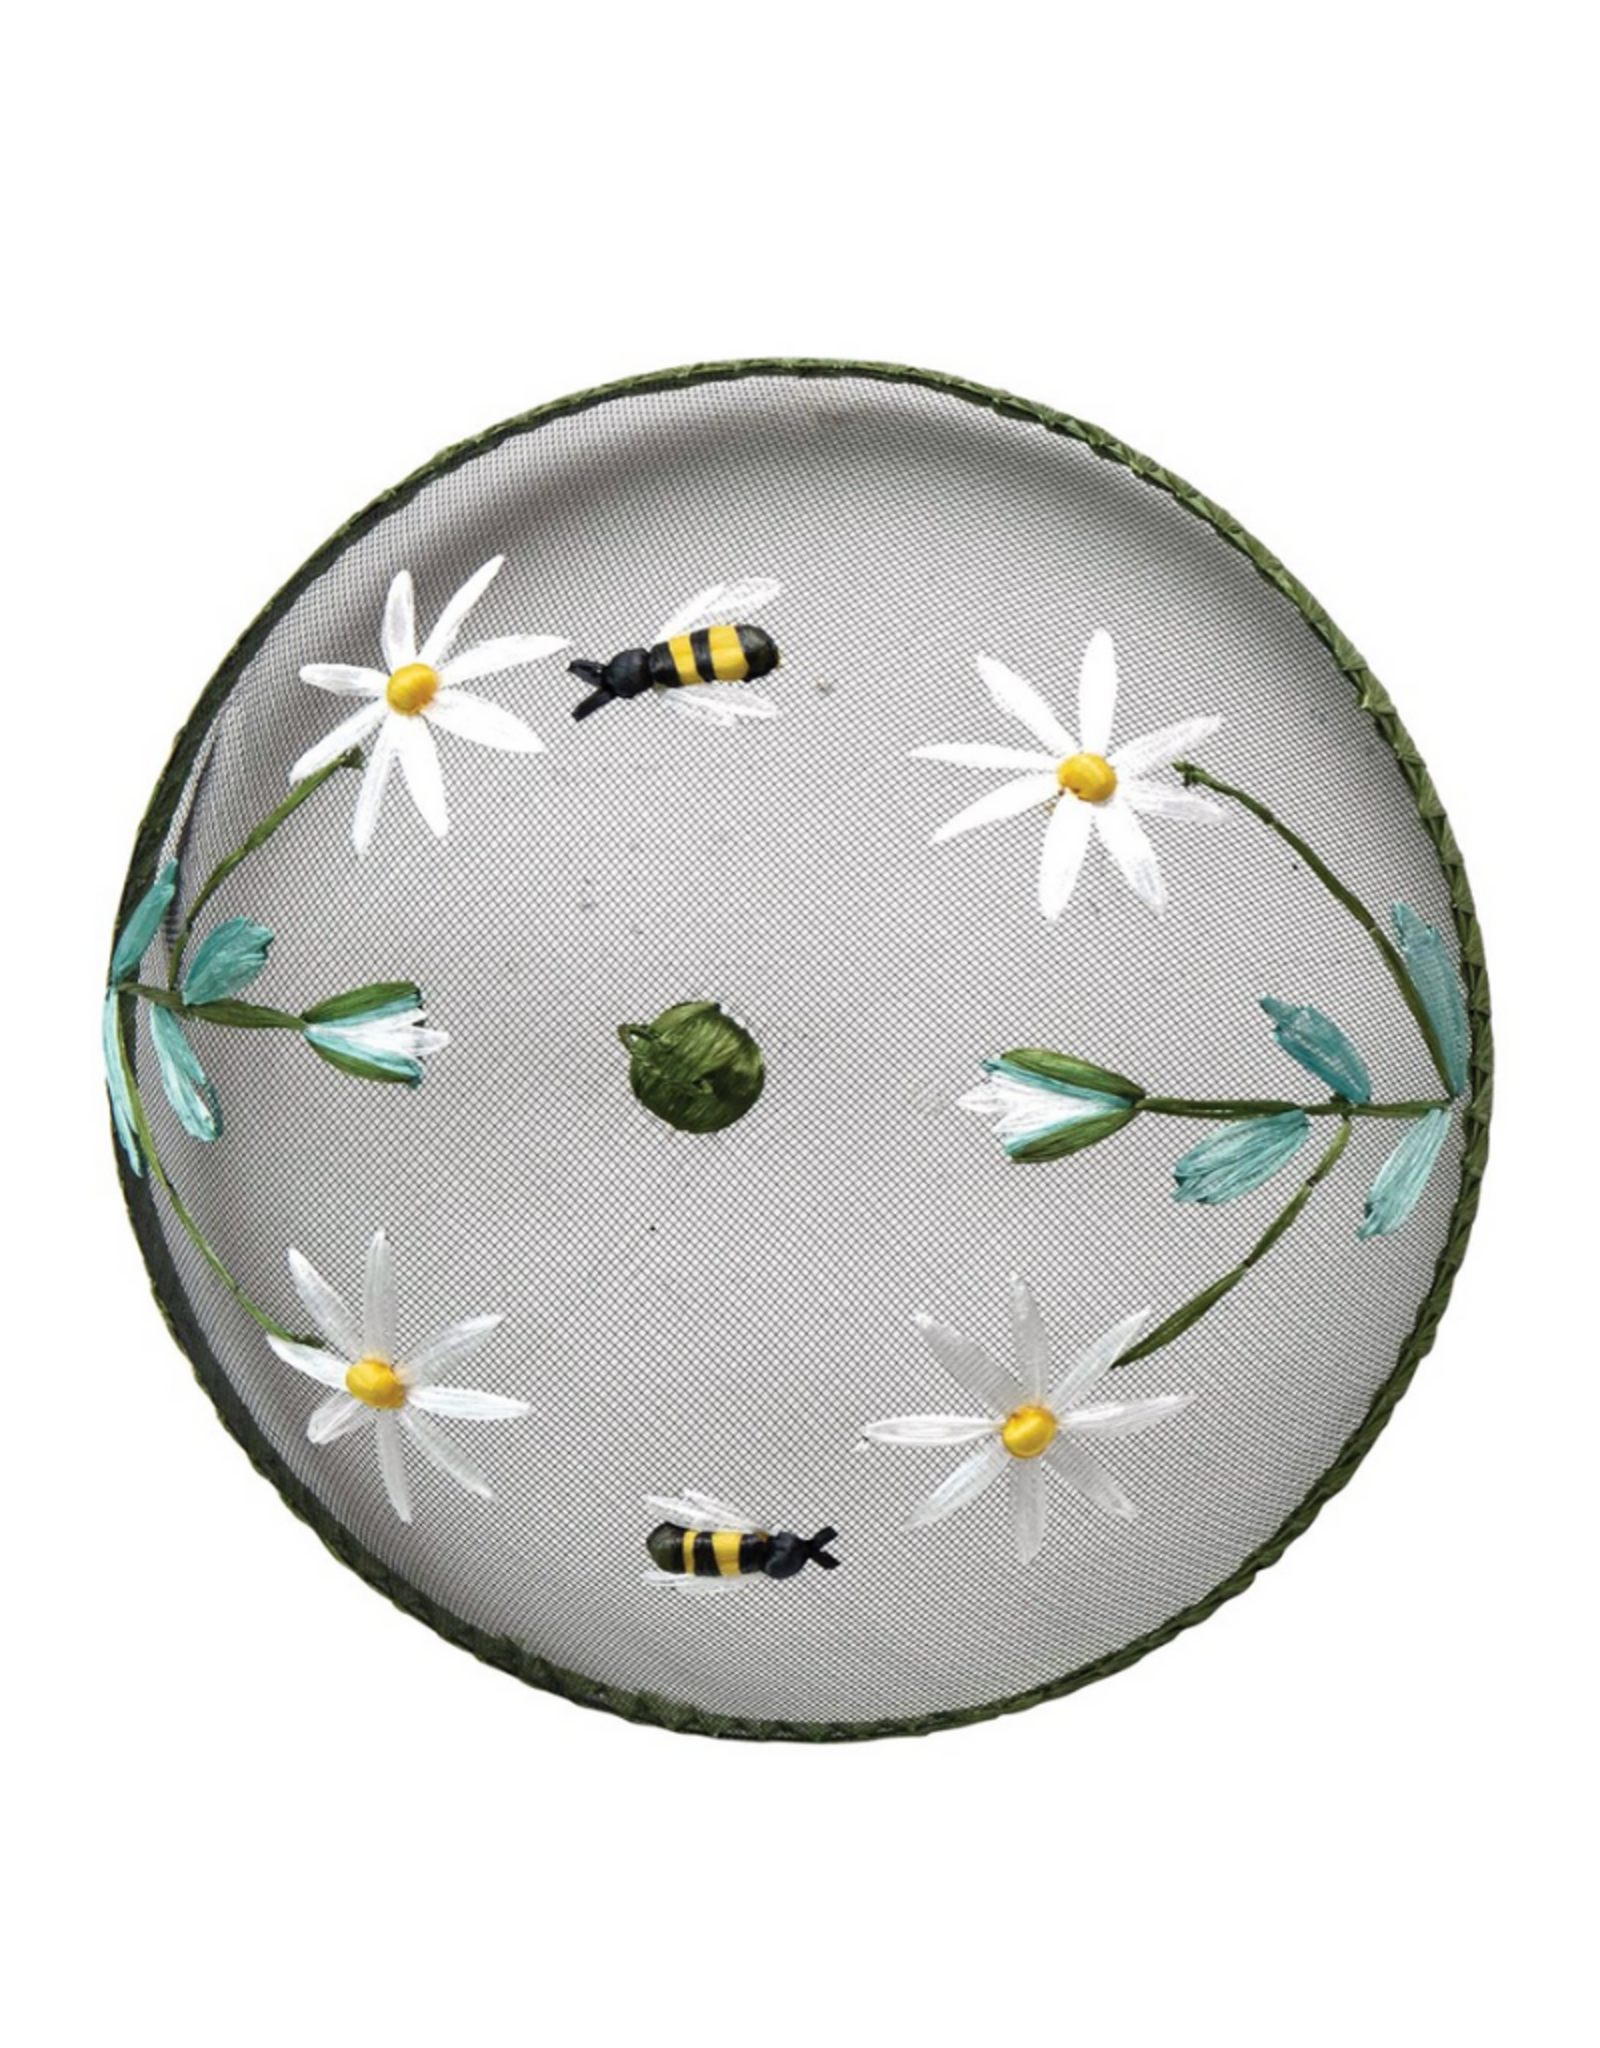 FOOD COVER-METAL-EMBROIDERED BEES & FLOWERS, 14""